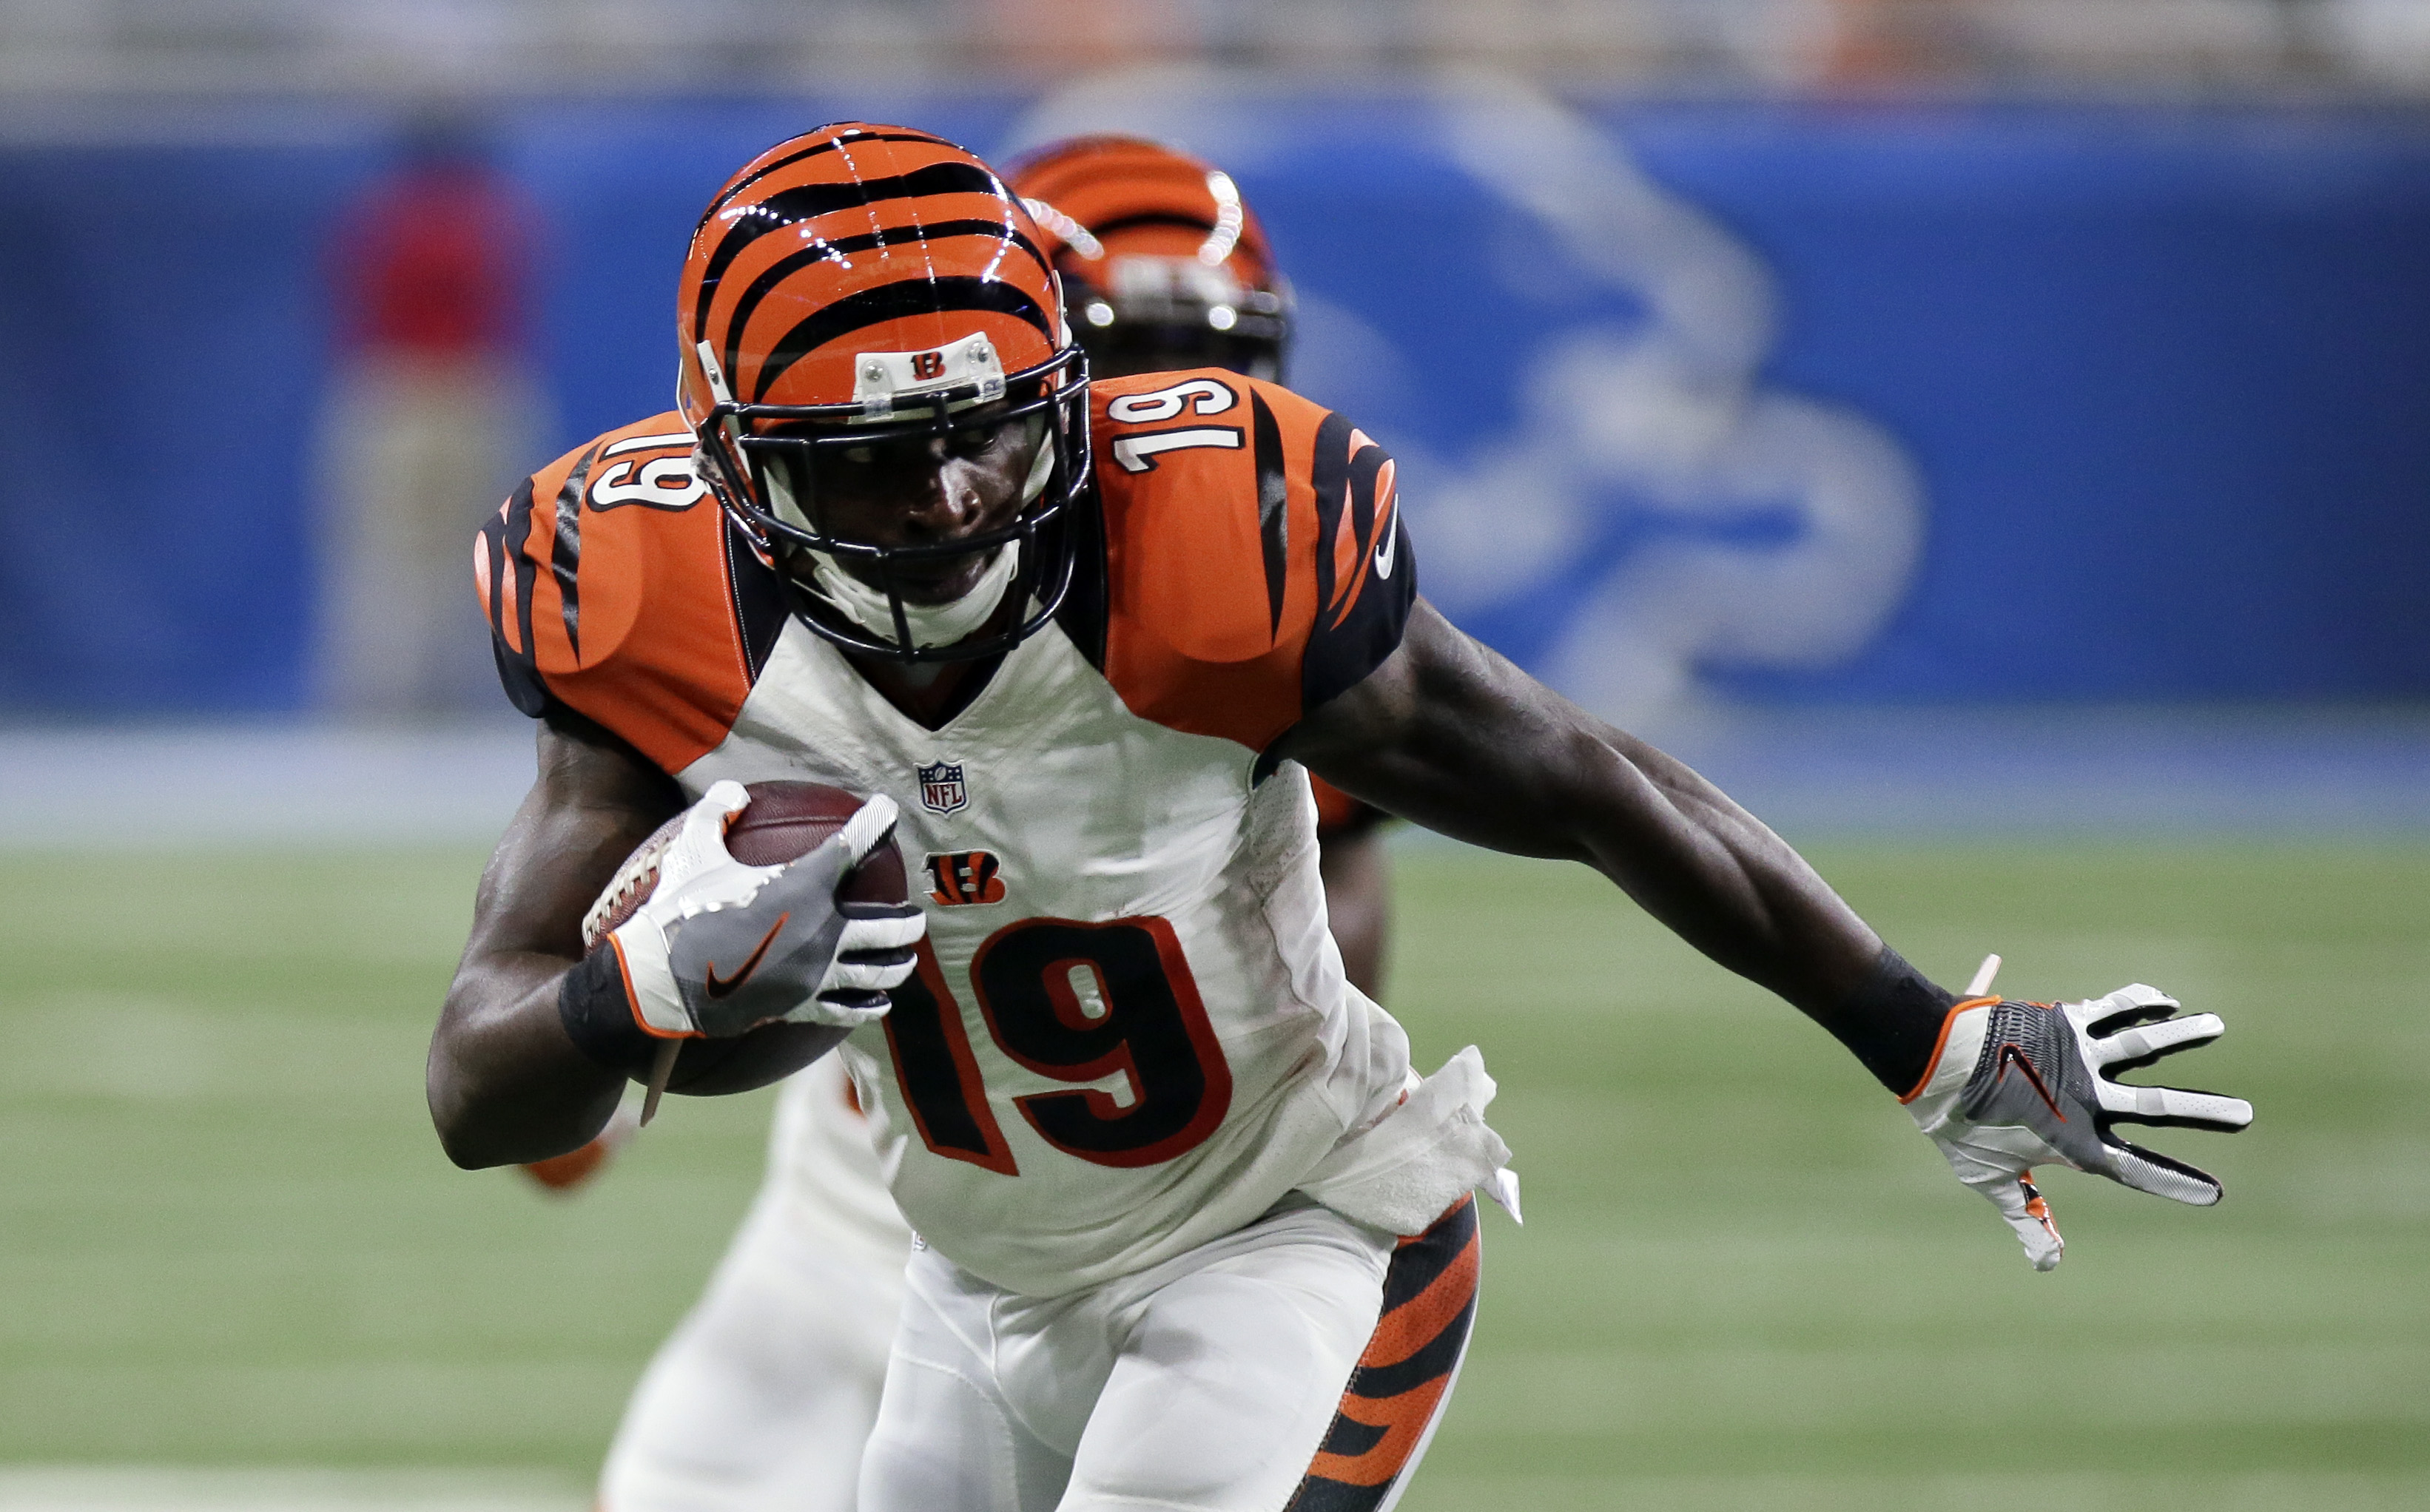 NFL notes: Brandon Tate cut loose by Bengals - The Boston Globe